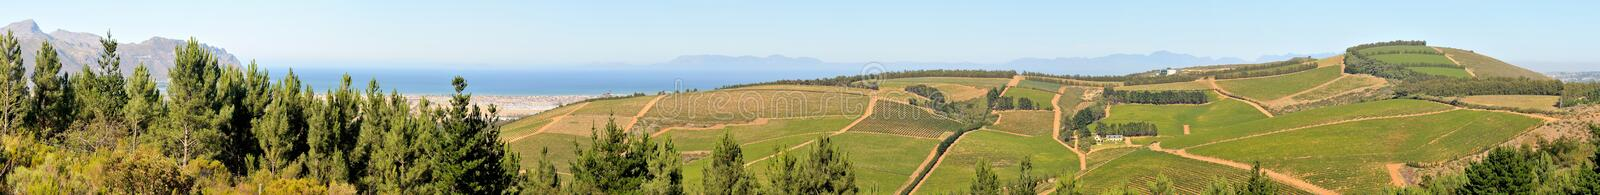 Panoramic view of vineyards near Sir Lowreys Pass royalty free stock images